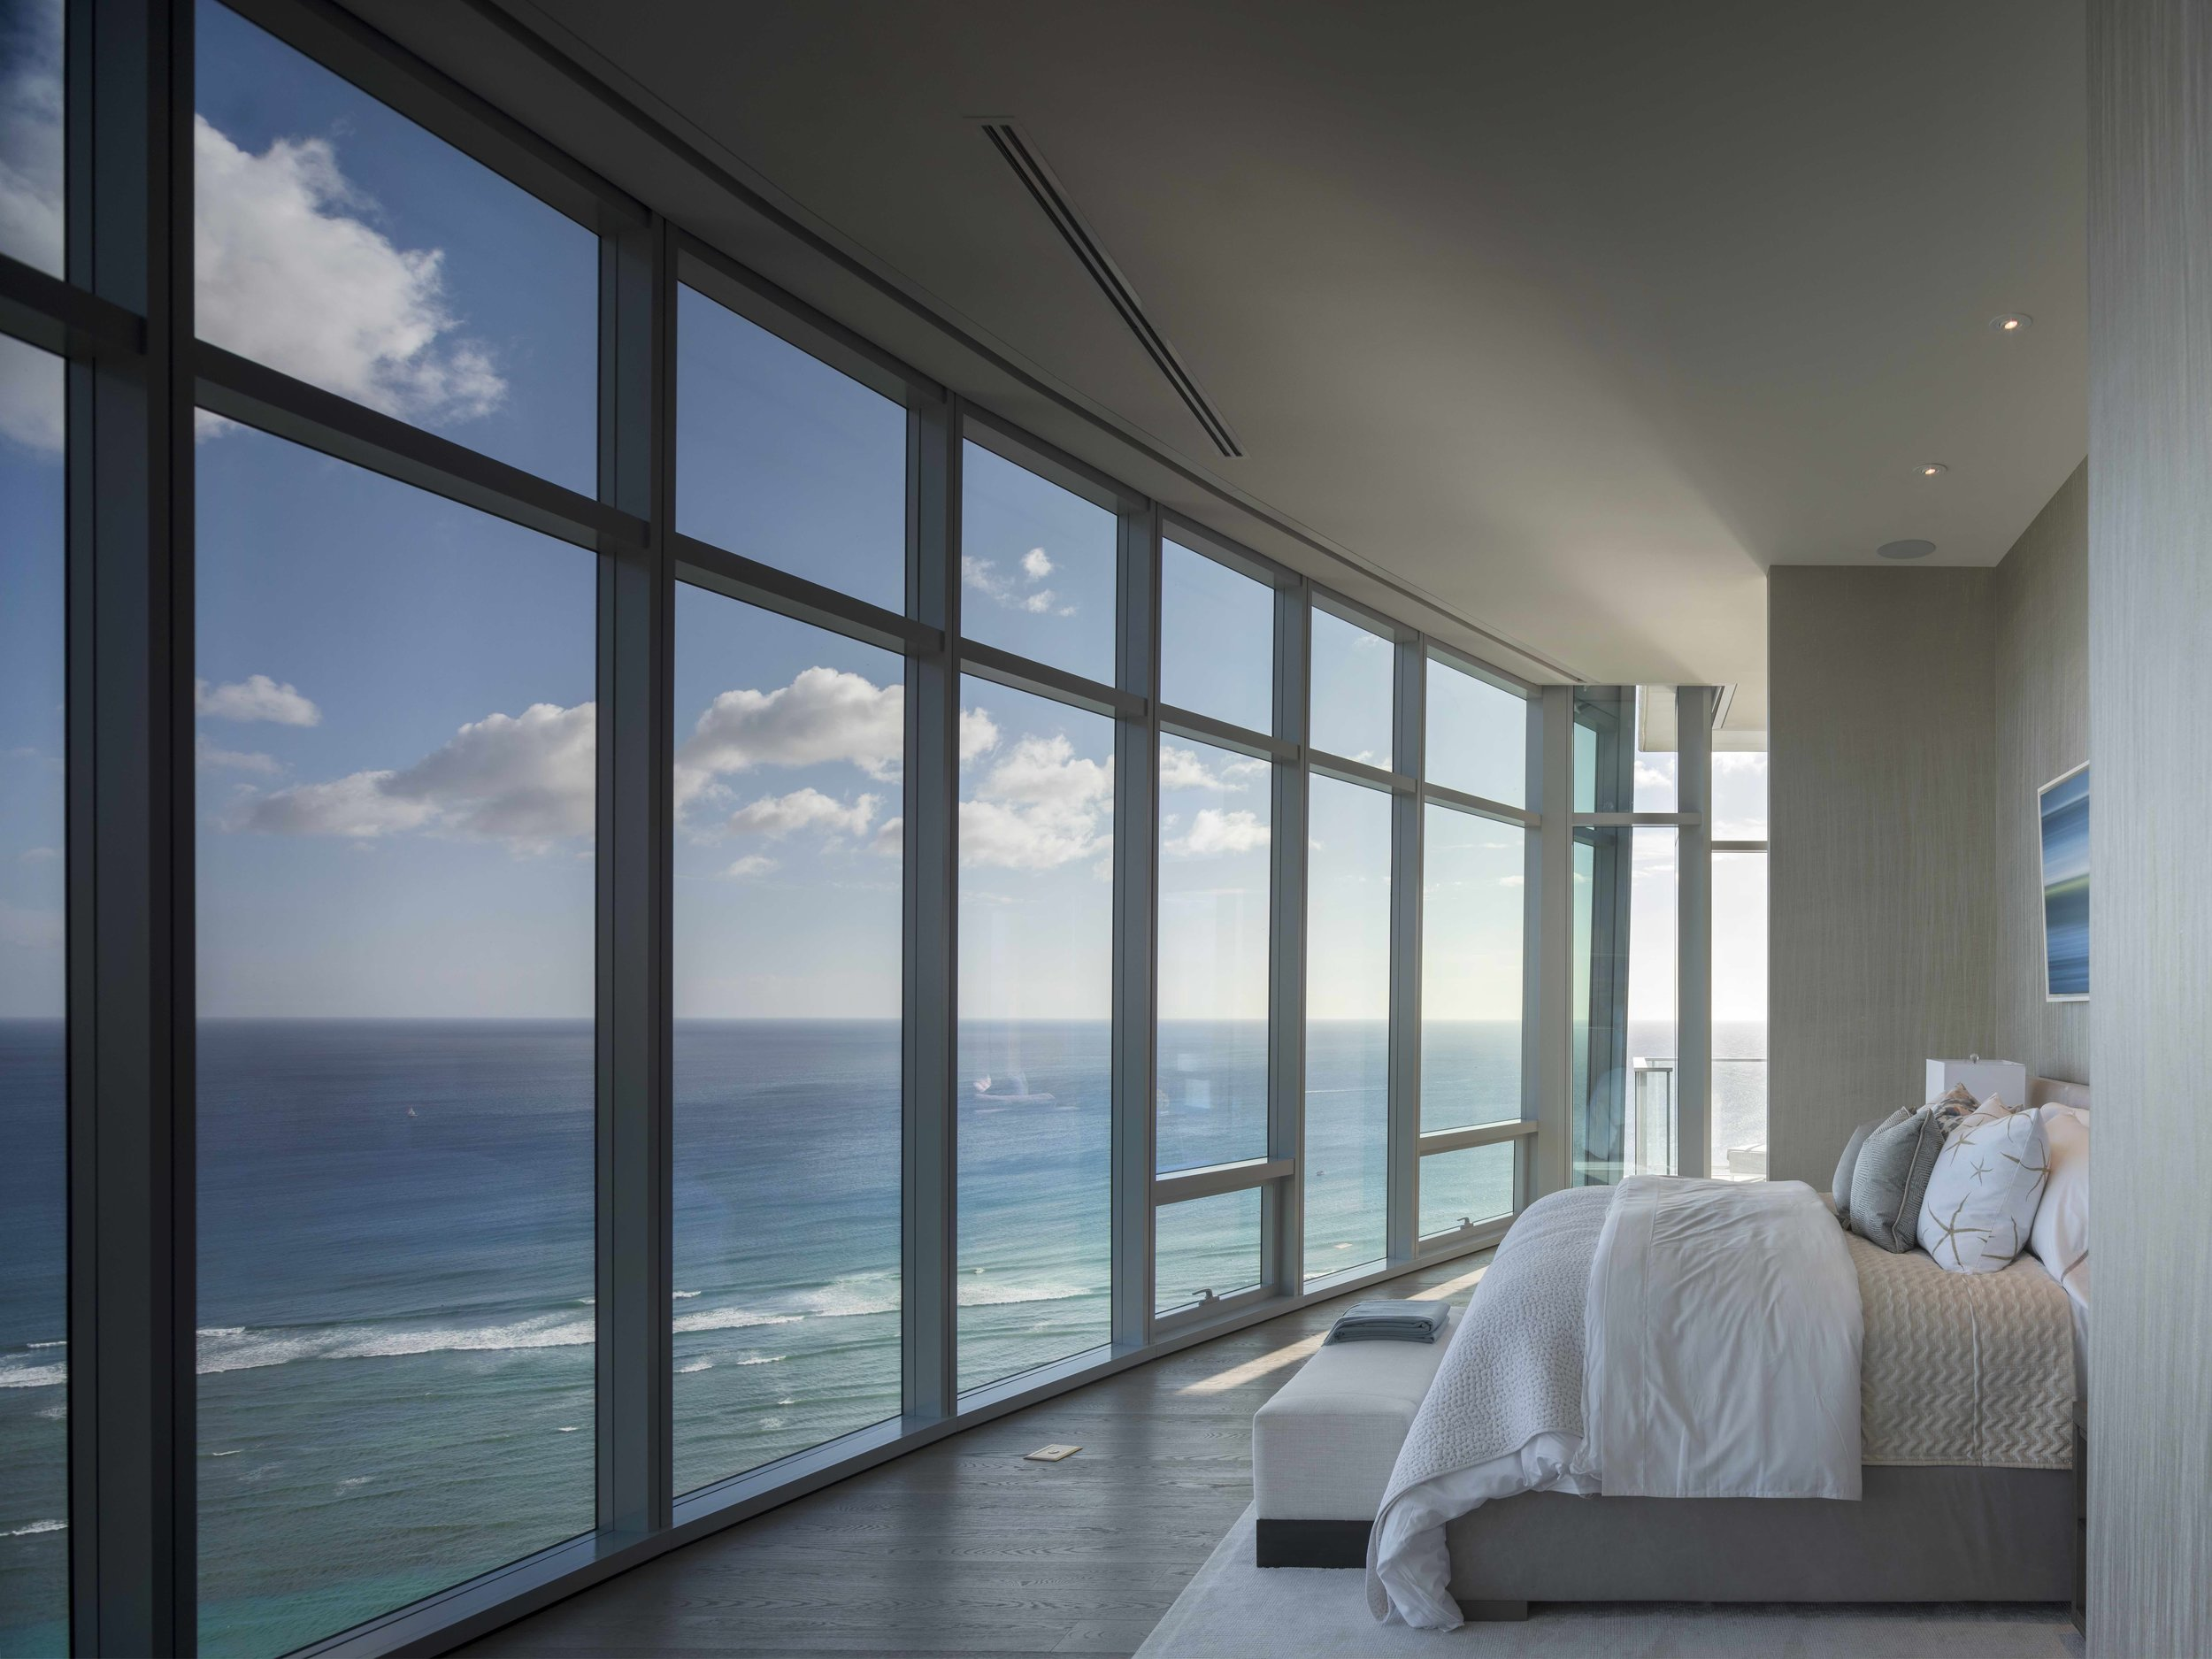 The penthouse at Waiea is listed for US$ 36 million, photo by Nic Lihoux